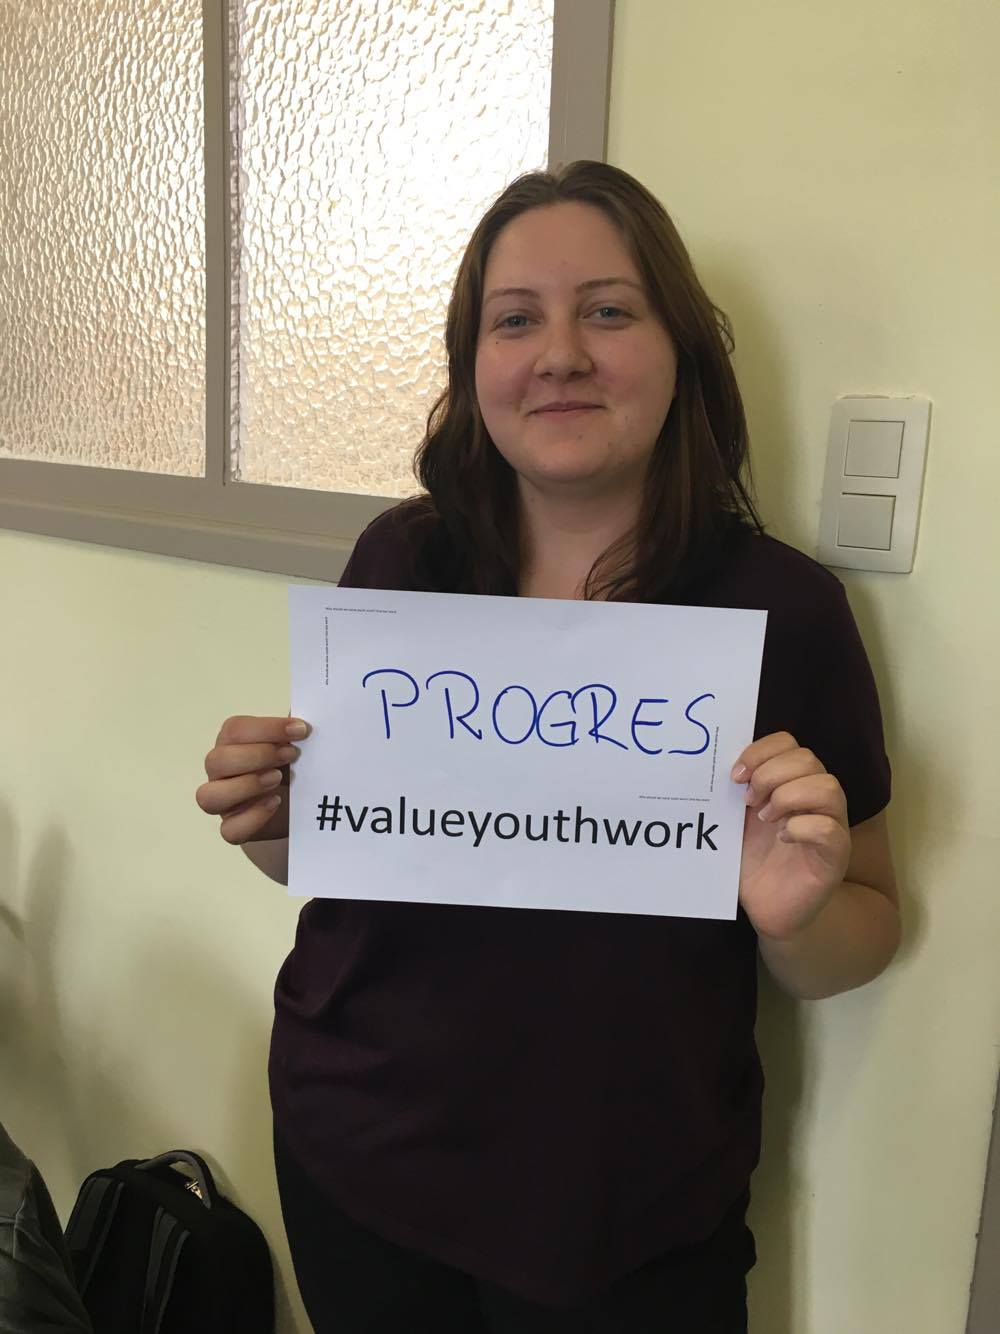 Progress happens through youth work.